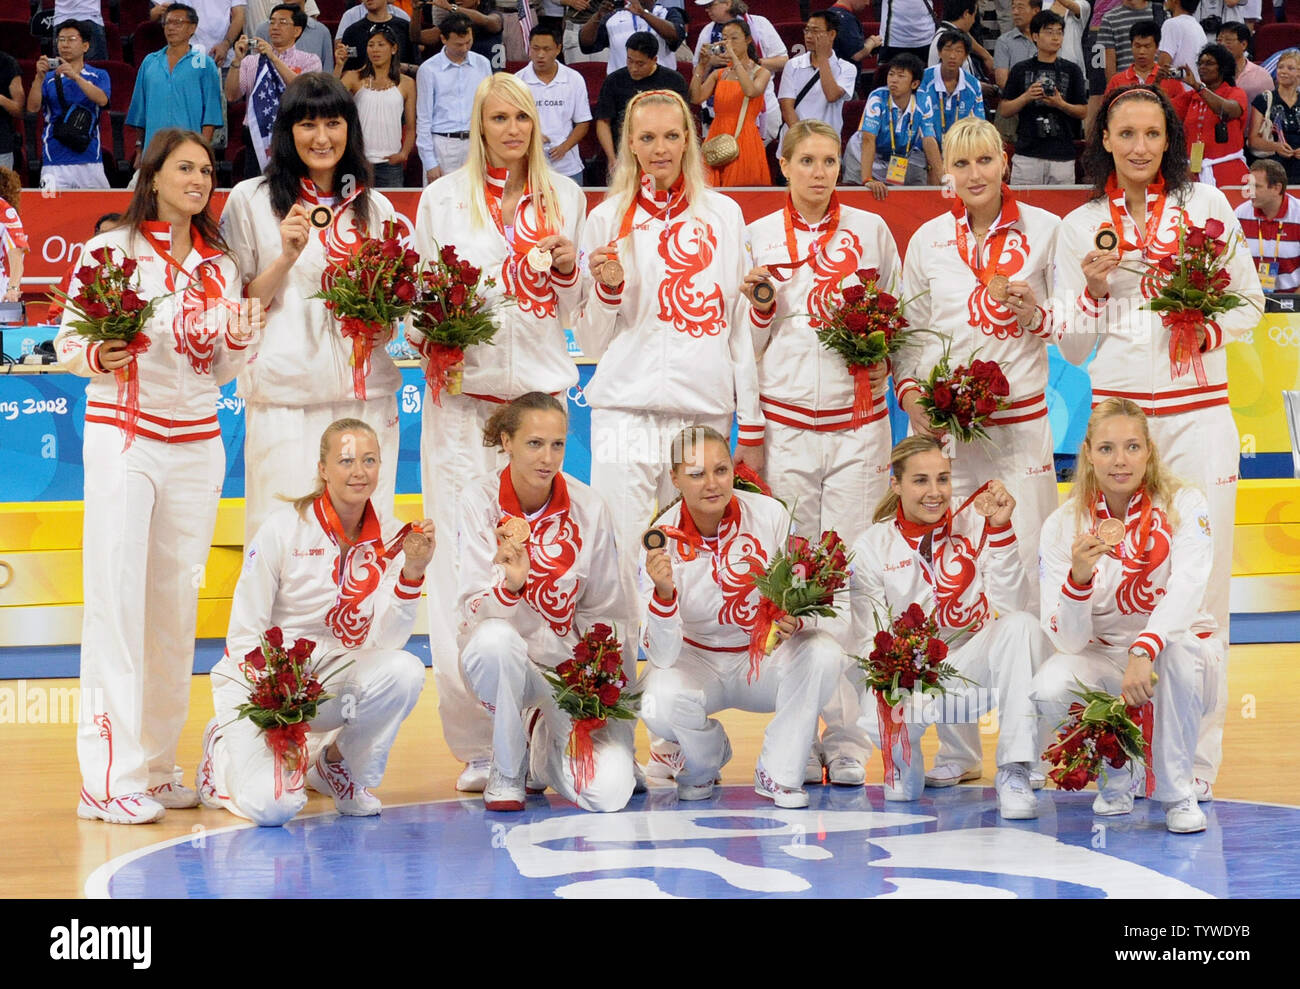 Russia shows the bronze medals they earned in their Women's Basketball game during the 2008 Summer Olympics in Beijing on August 23, 2008.   (UPI Photo/Roger L. Wollenberg) - Stock Image